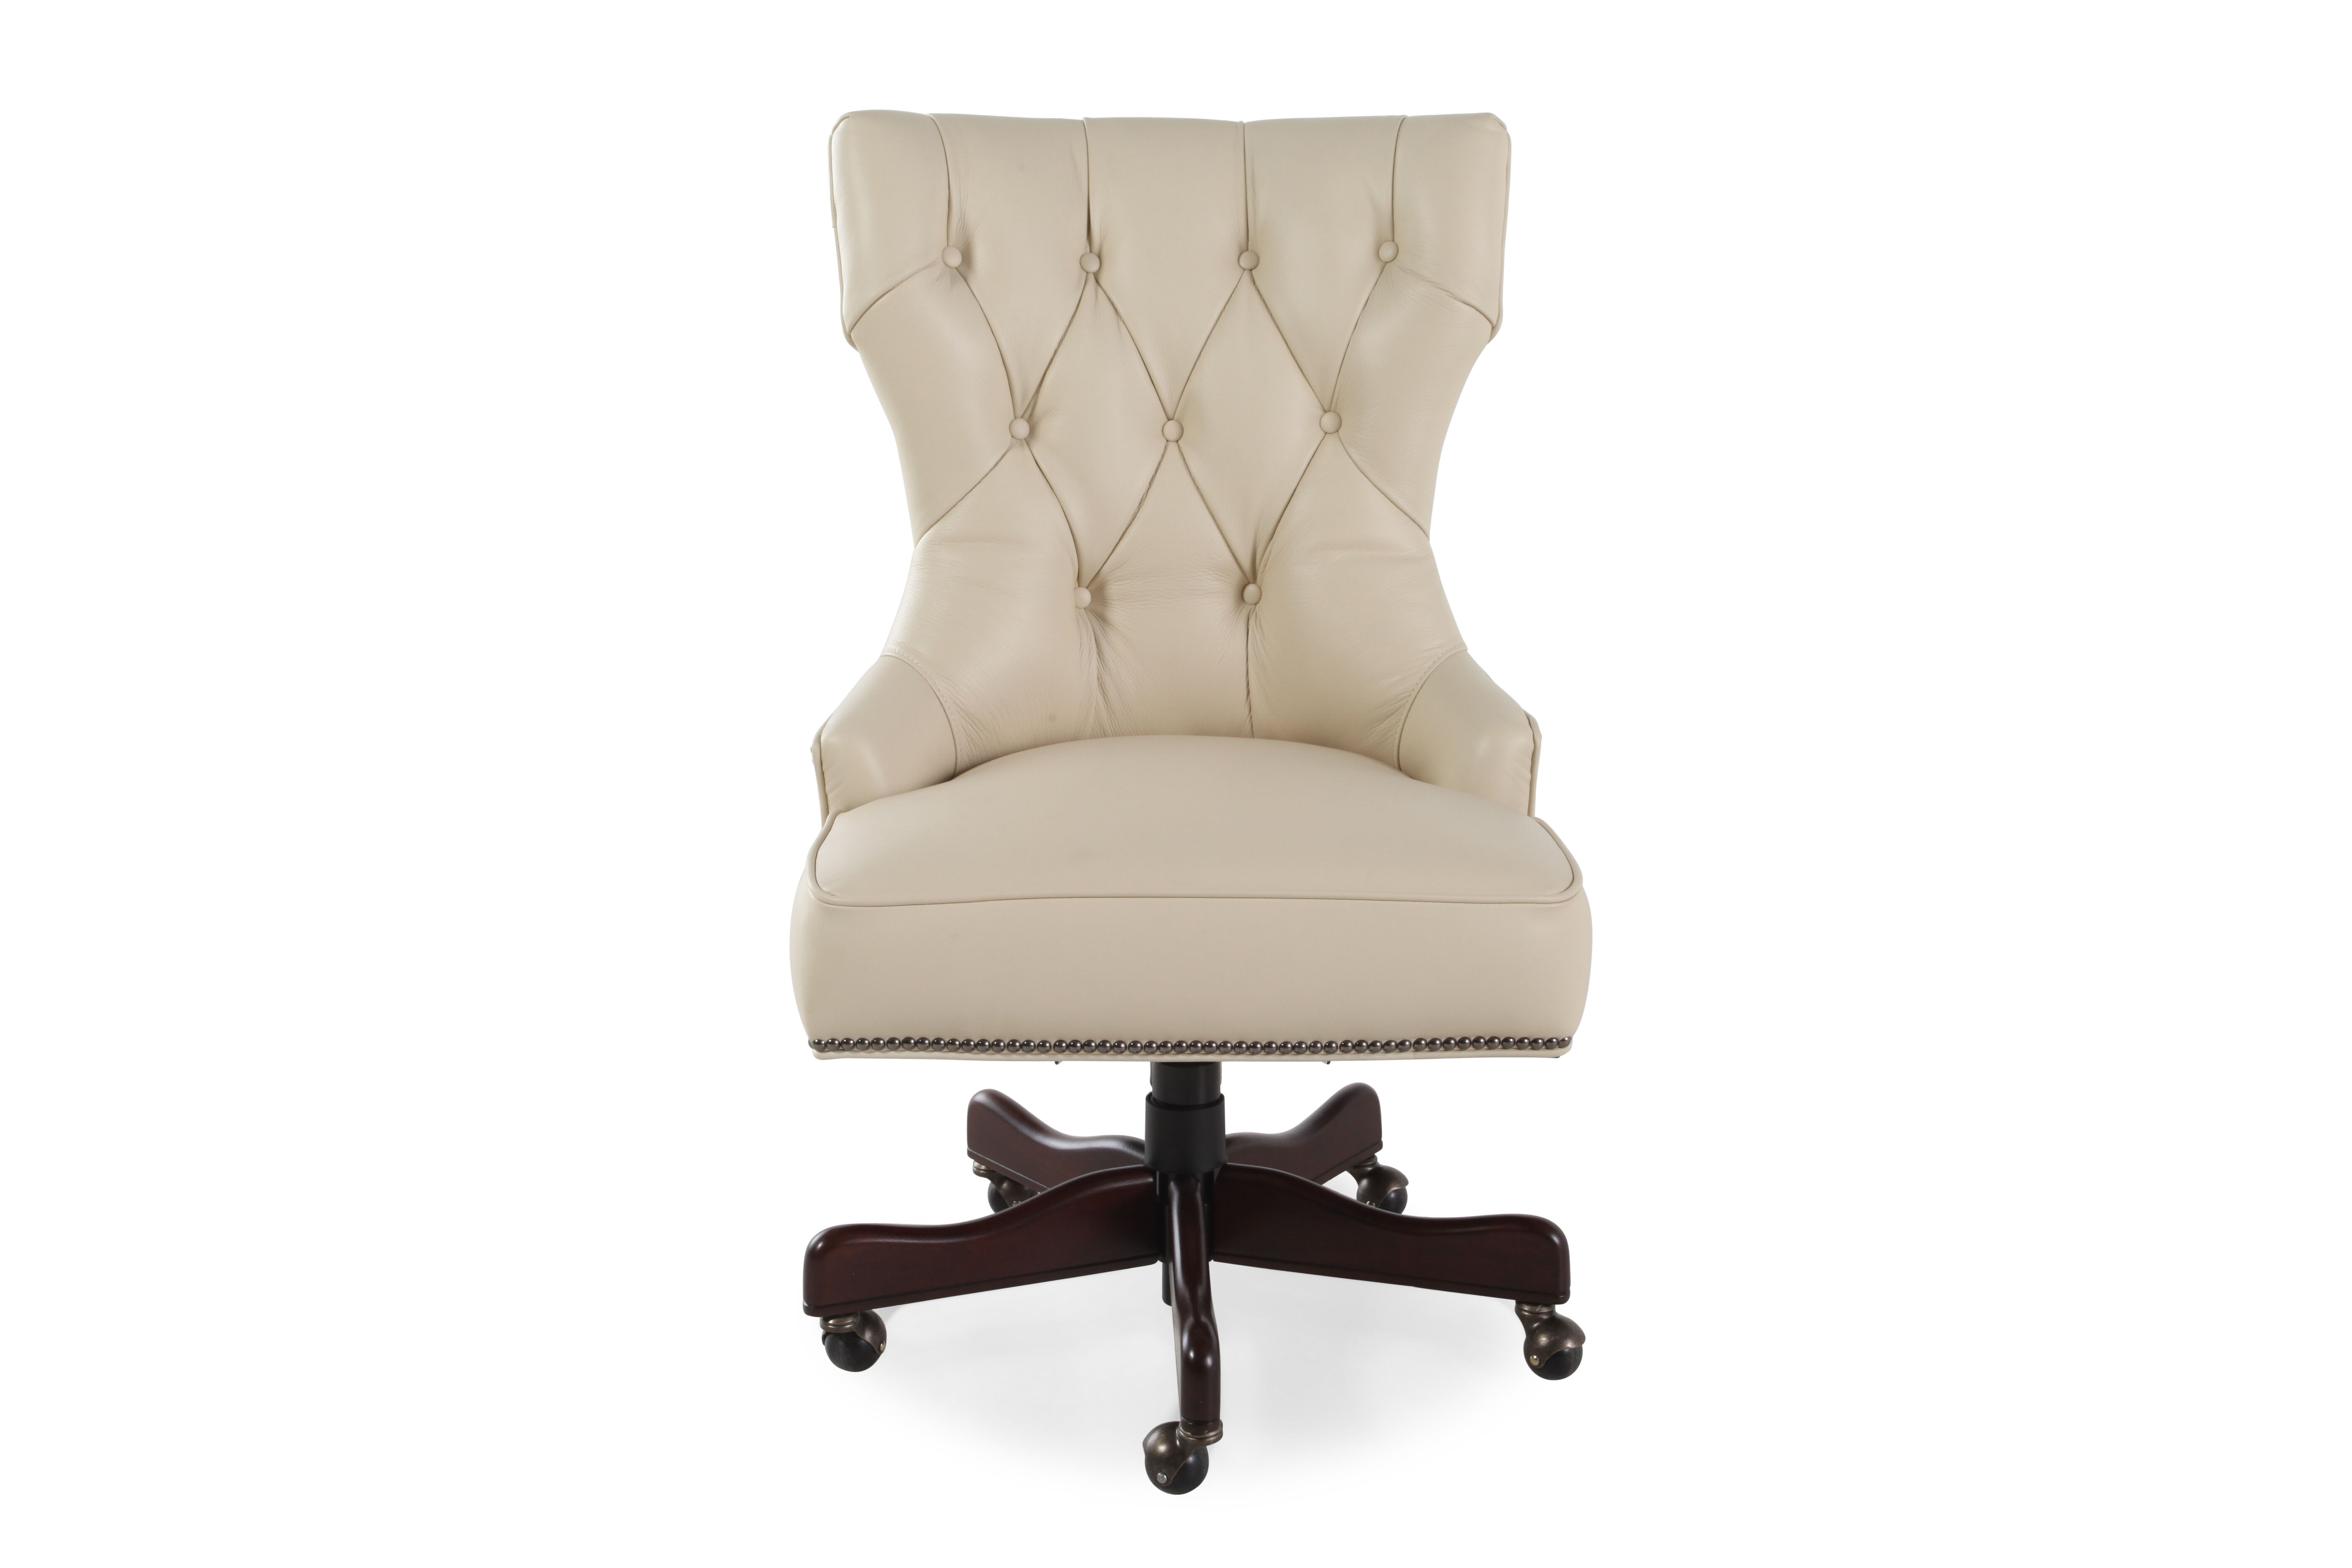 ivory leather office chair clamp on sun umbrella button tufted swivel tilt desk in mathis brothers furniture